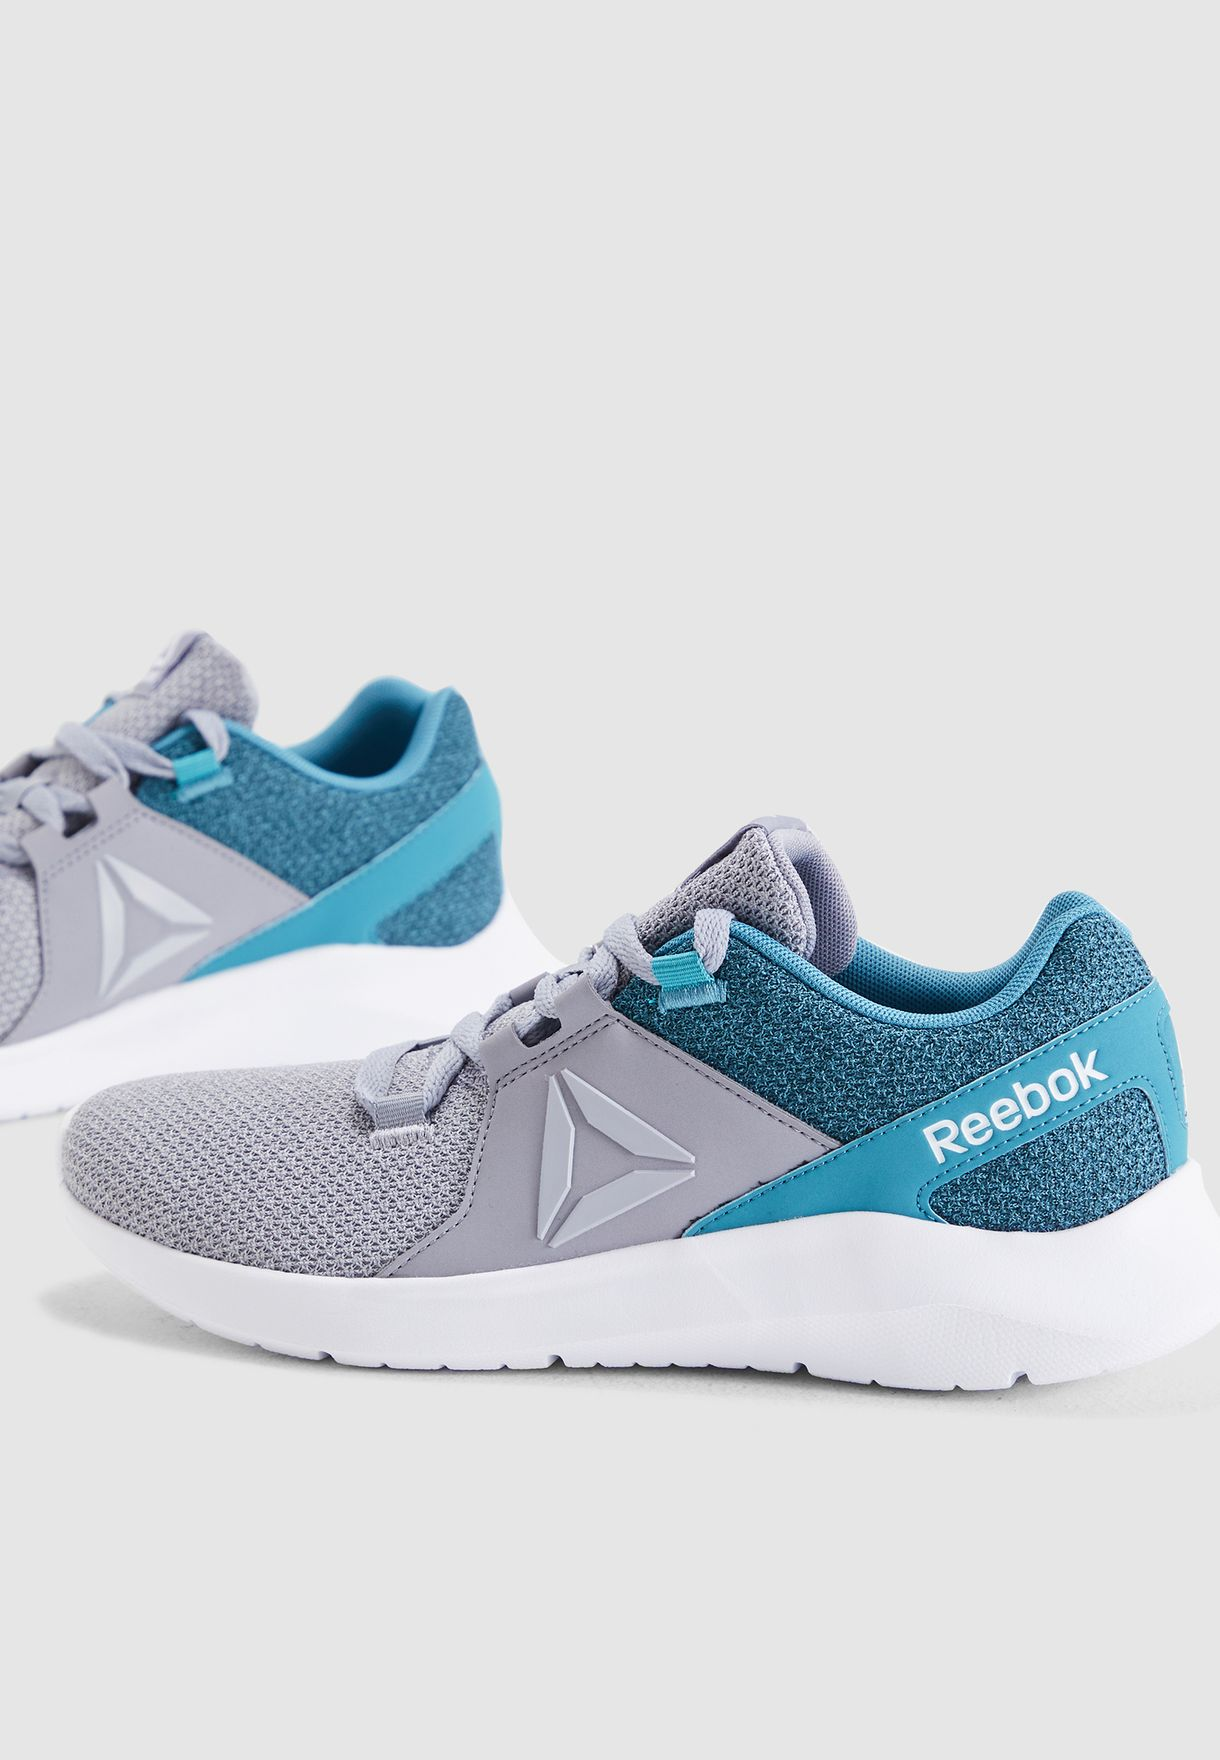 63c59193c8ab Premium Shoes Sports View all · Today s deal New arrivals · 0. Energy Lux